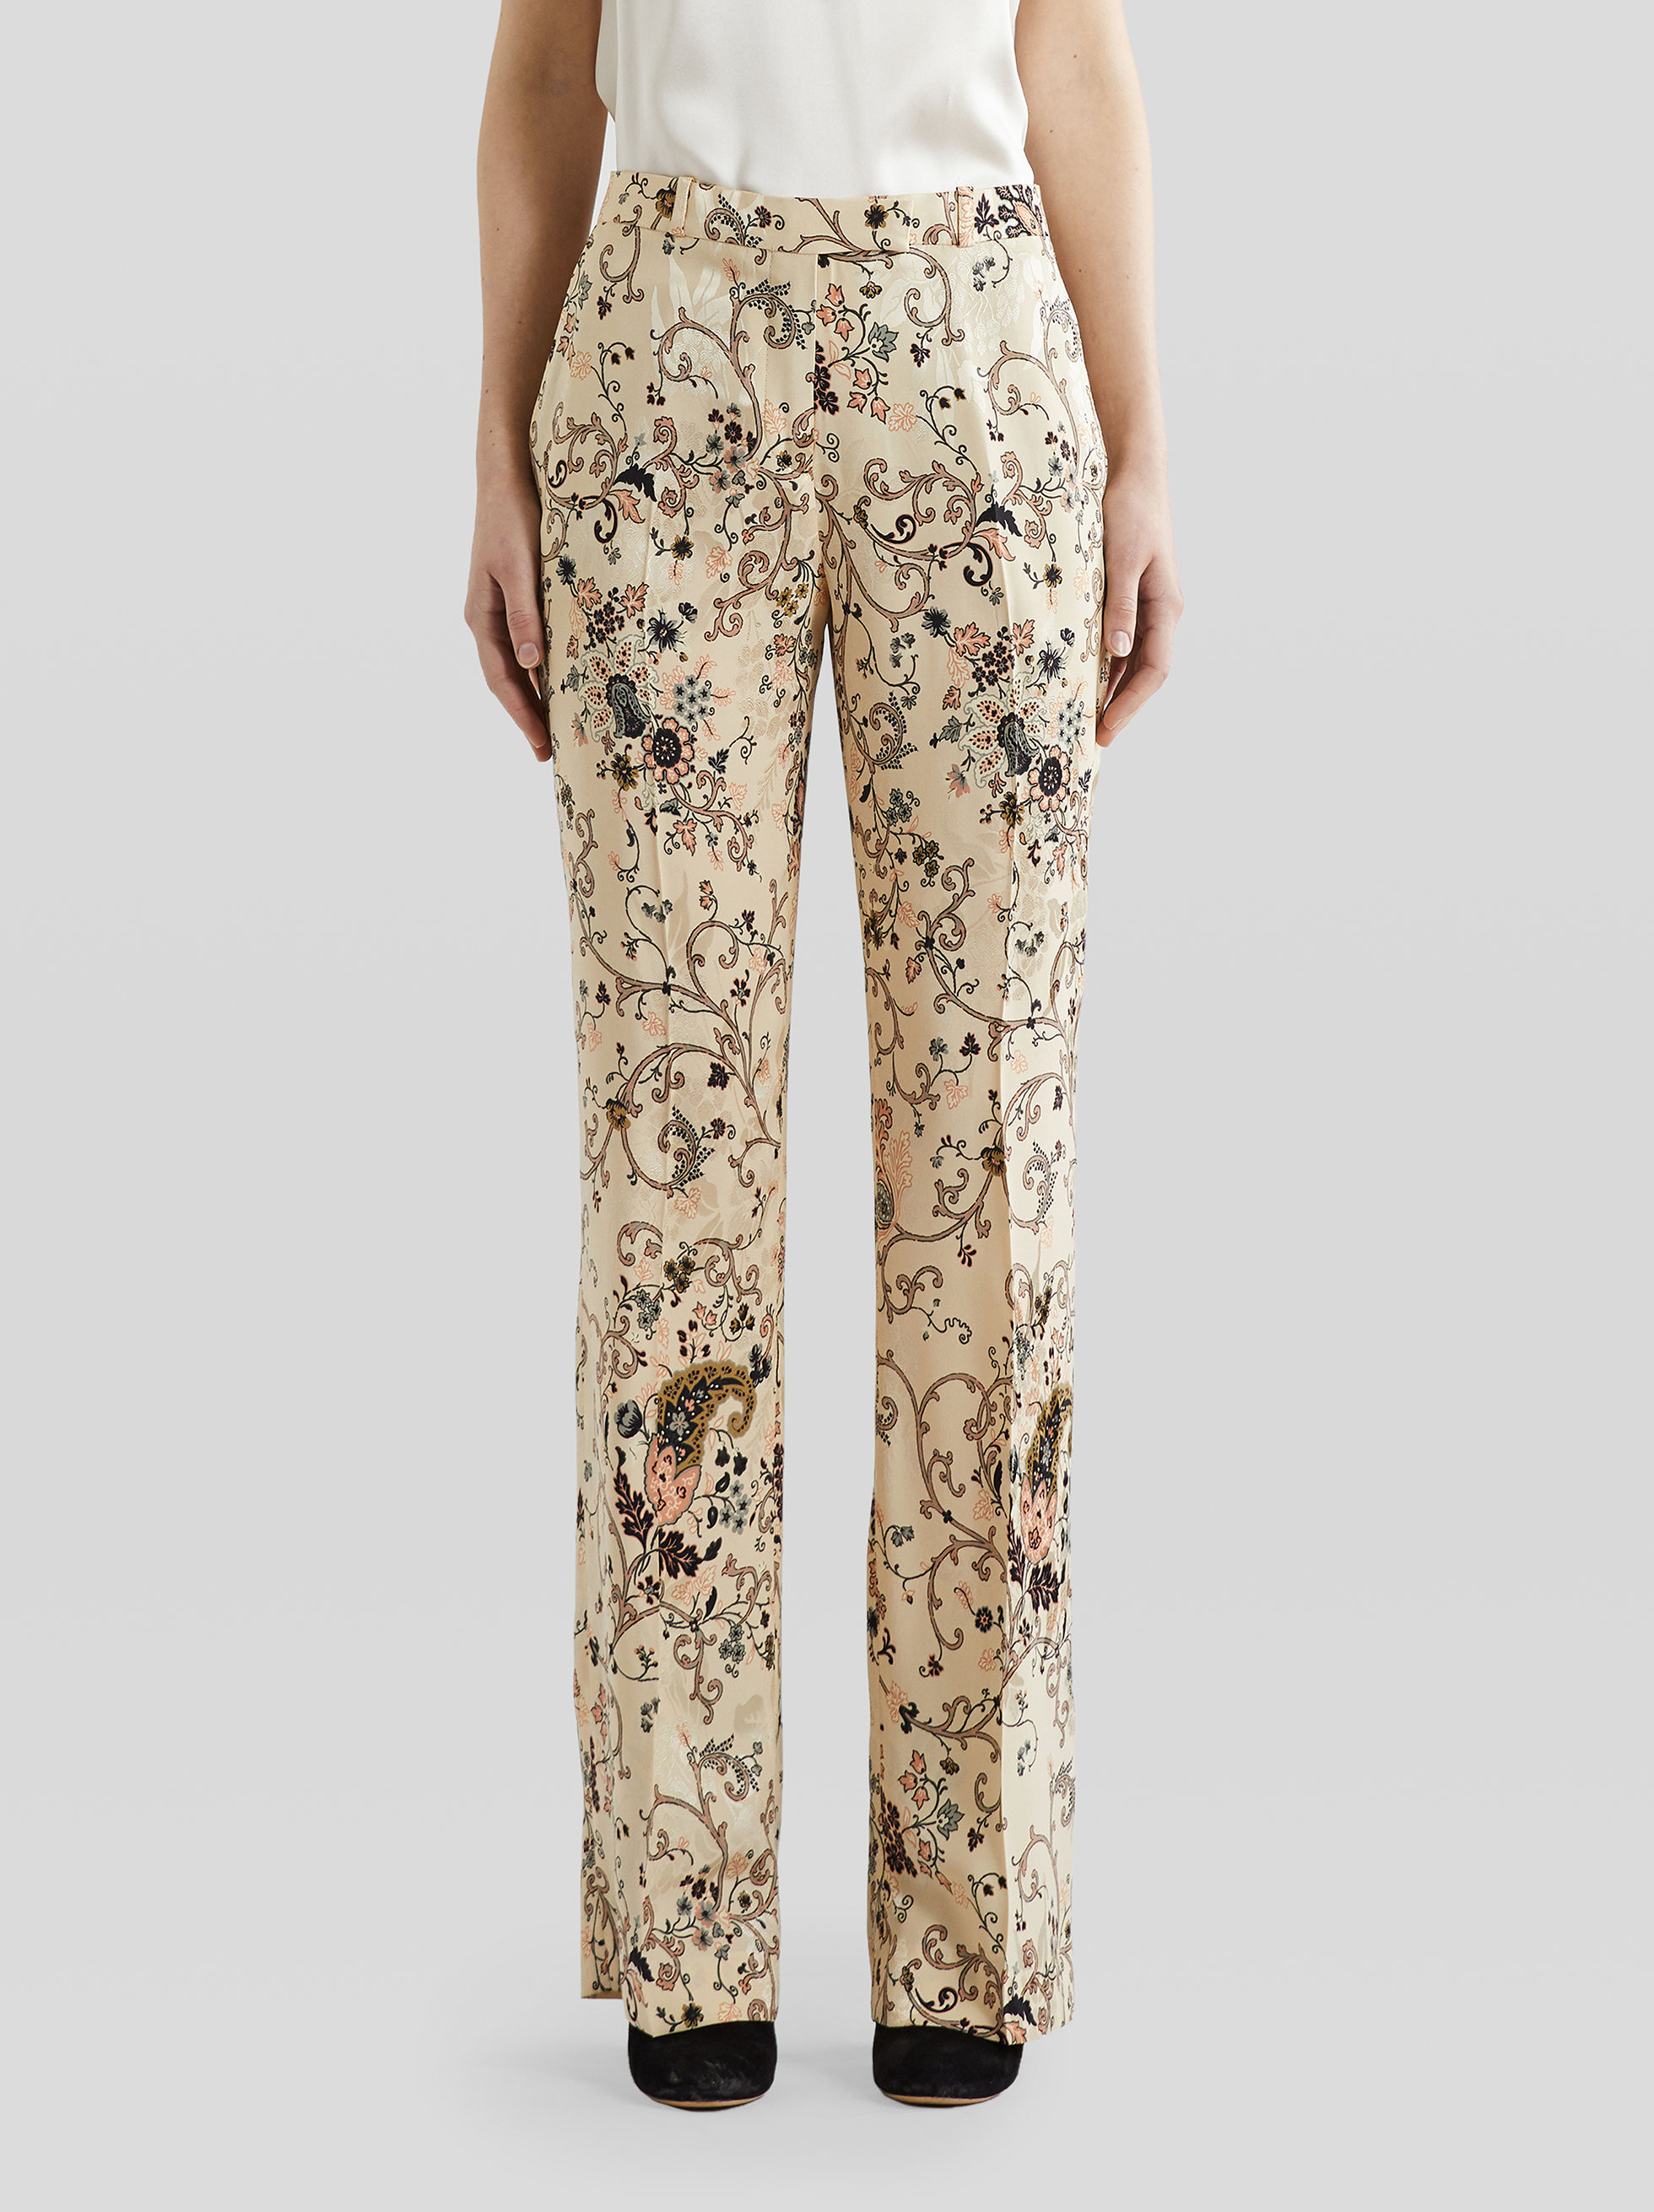 PAISLEY PRINT JACQUARD TROUSERS by Etro, available on etro.com Bella Hadid Pants SIMILAR PRODUCT